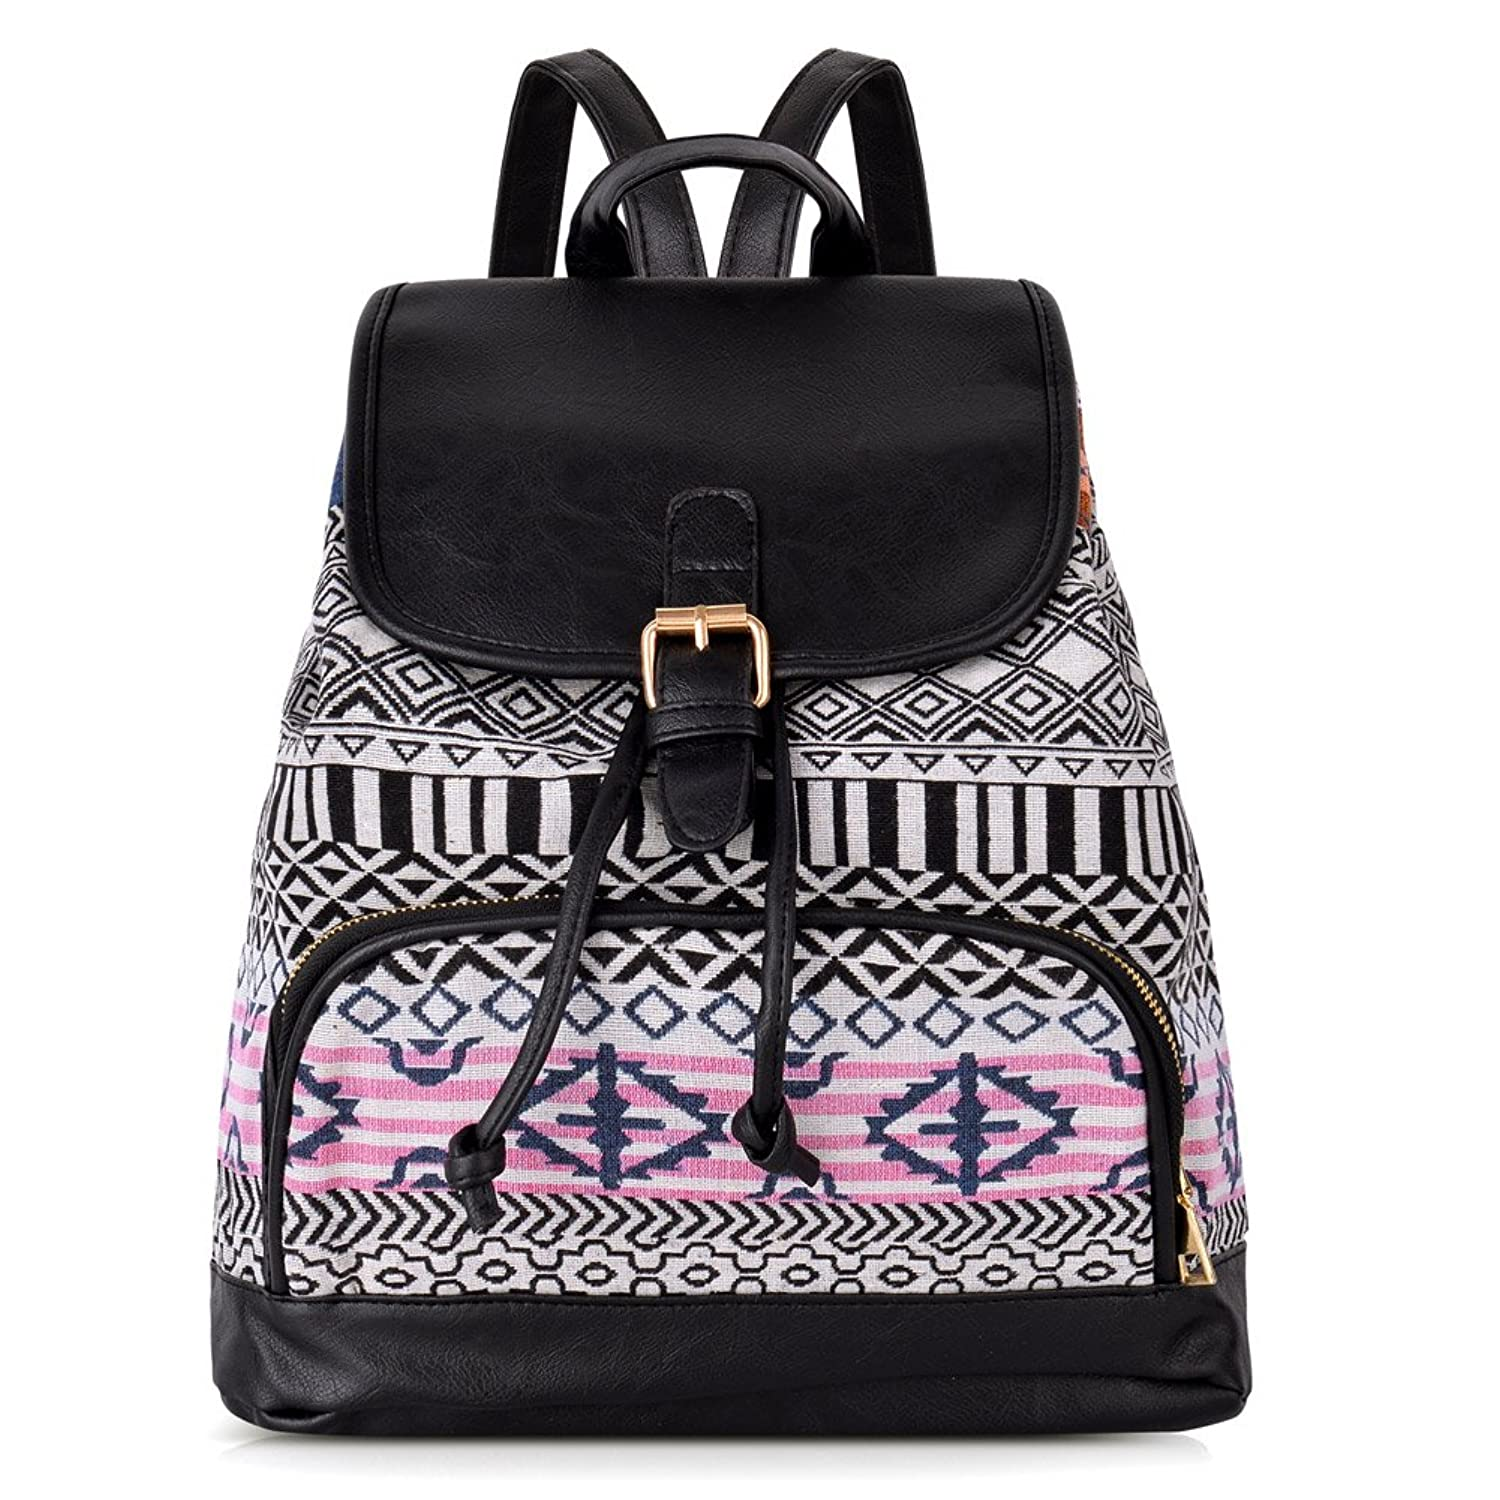 Vbiger Canvas Backpack For Women Girls Boys Casual Book Bag Sports Daypack